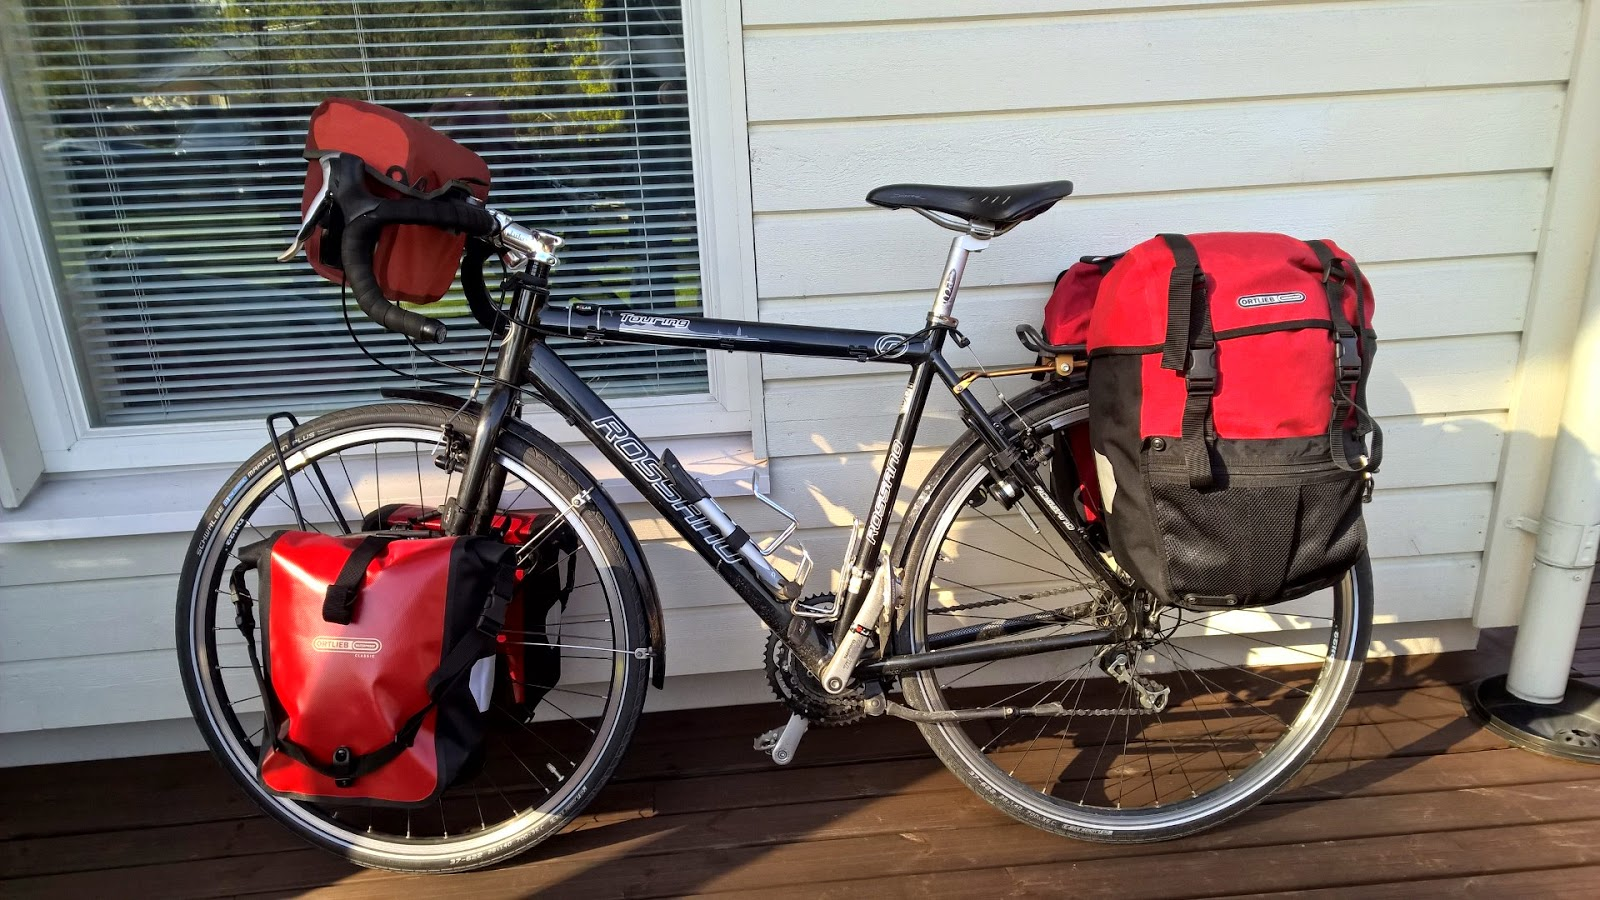 Cycling Across Europe 2015 May Measure The Distance By Bicycle Ortlieb Panniers Used To Carry Stuff And Polar Cs200cad Odometer Time Cadence Etc